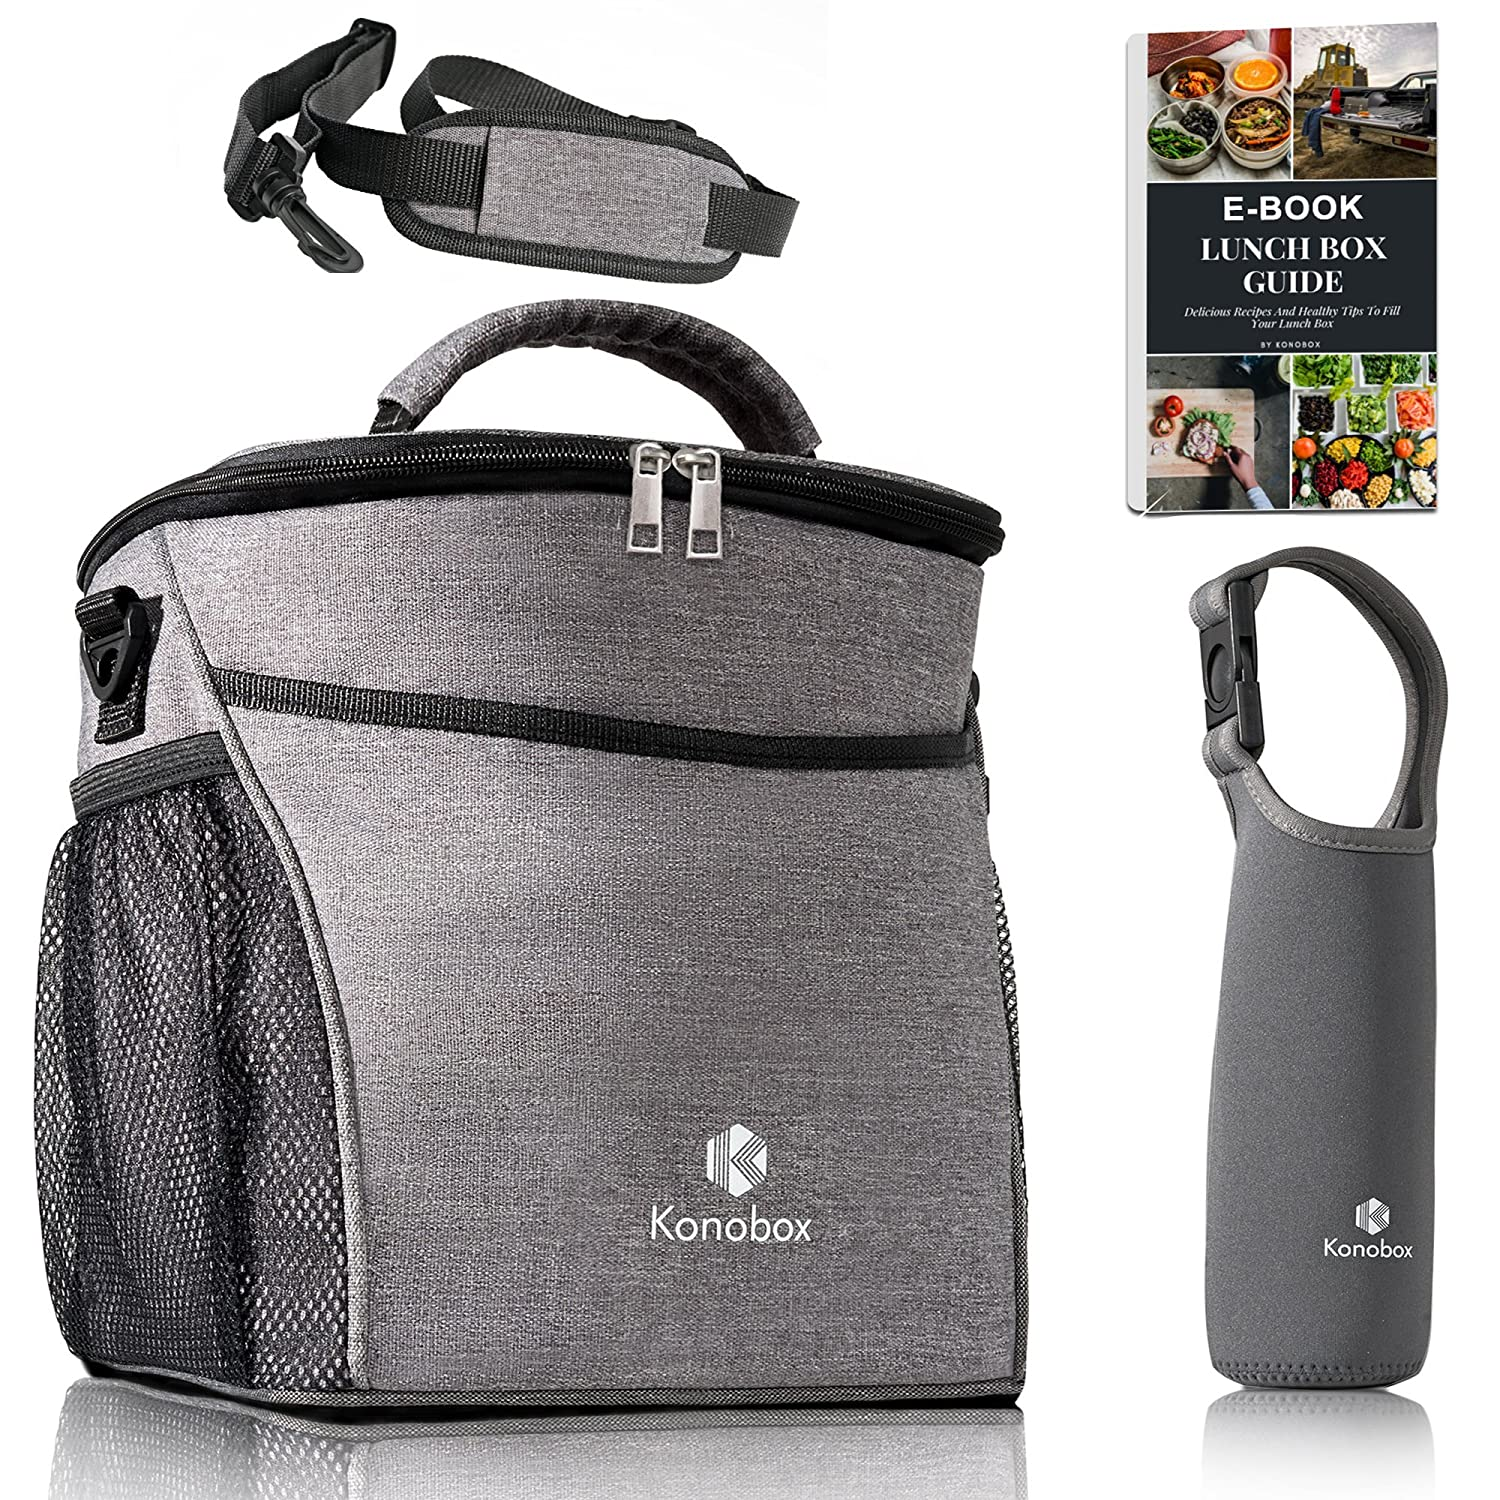 Insulated Big Lunch Bag - Leakproof Tote For Women and For Men - Includes a Thermal Bottle Sleeve - Grey Lonchera by Konobox